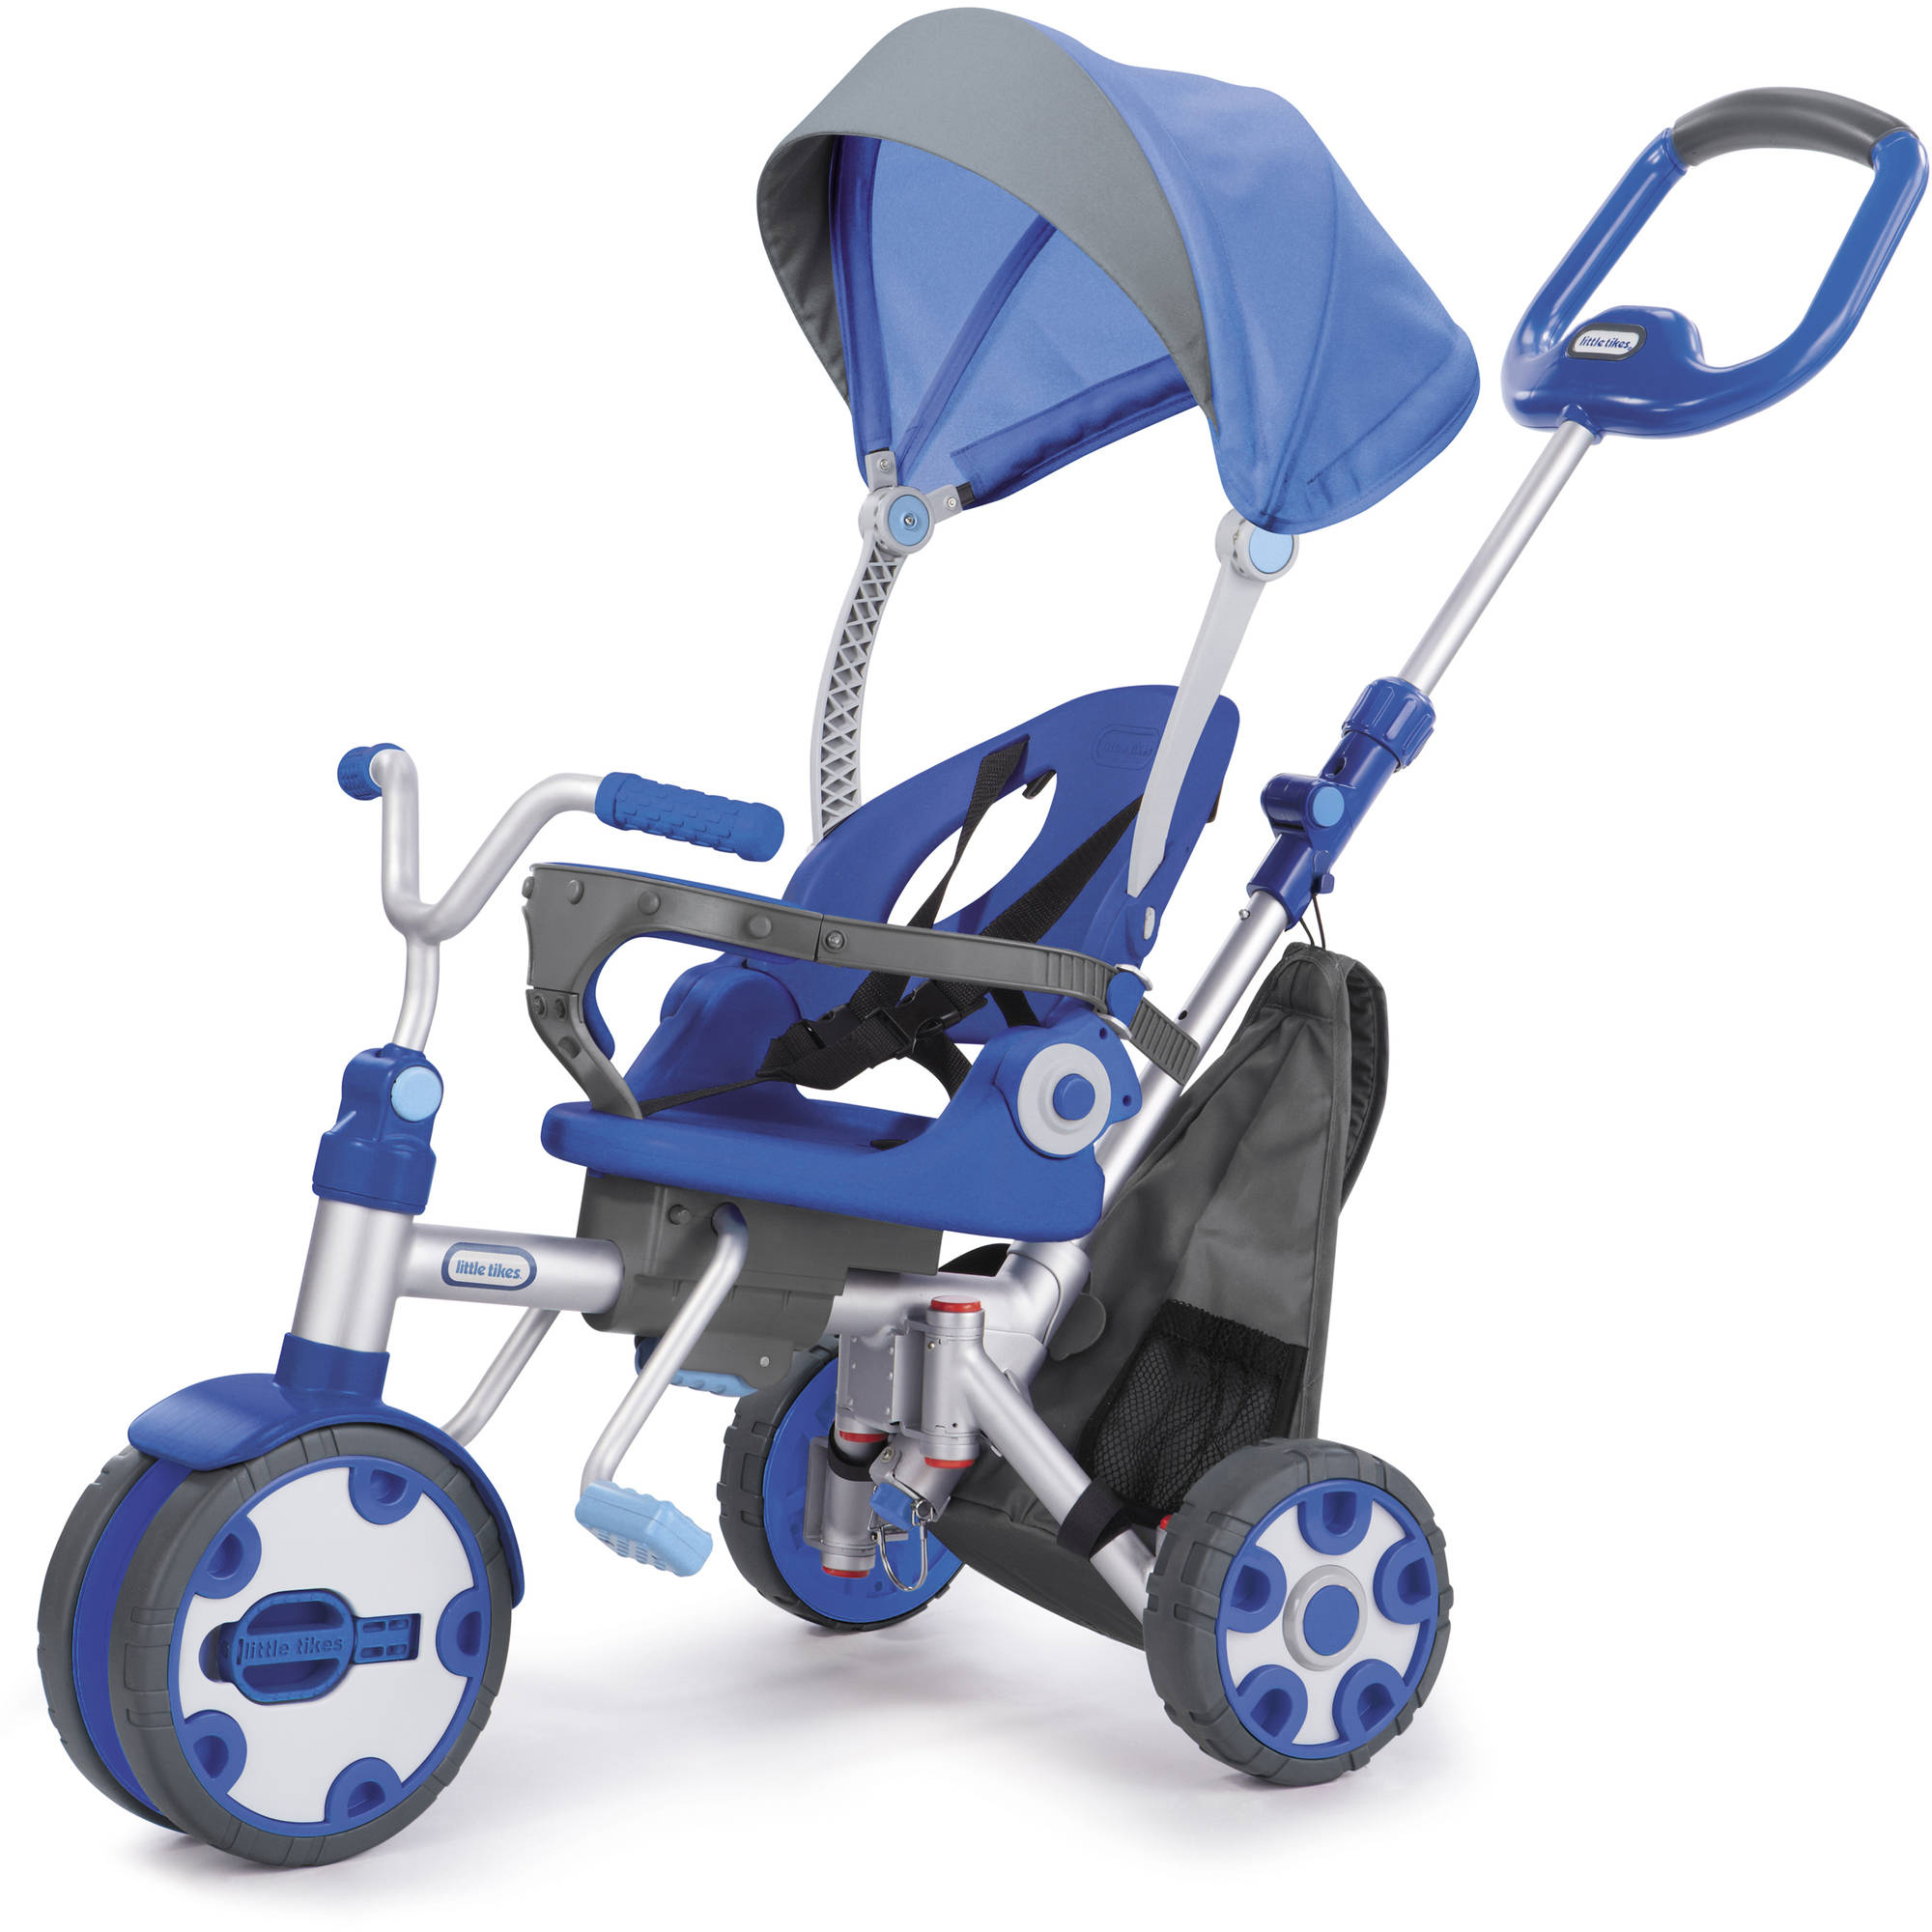 Little Tikes Fold 'n Go 4-in-1 Trike, Blue Grey by MGA Entertainment